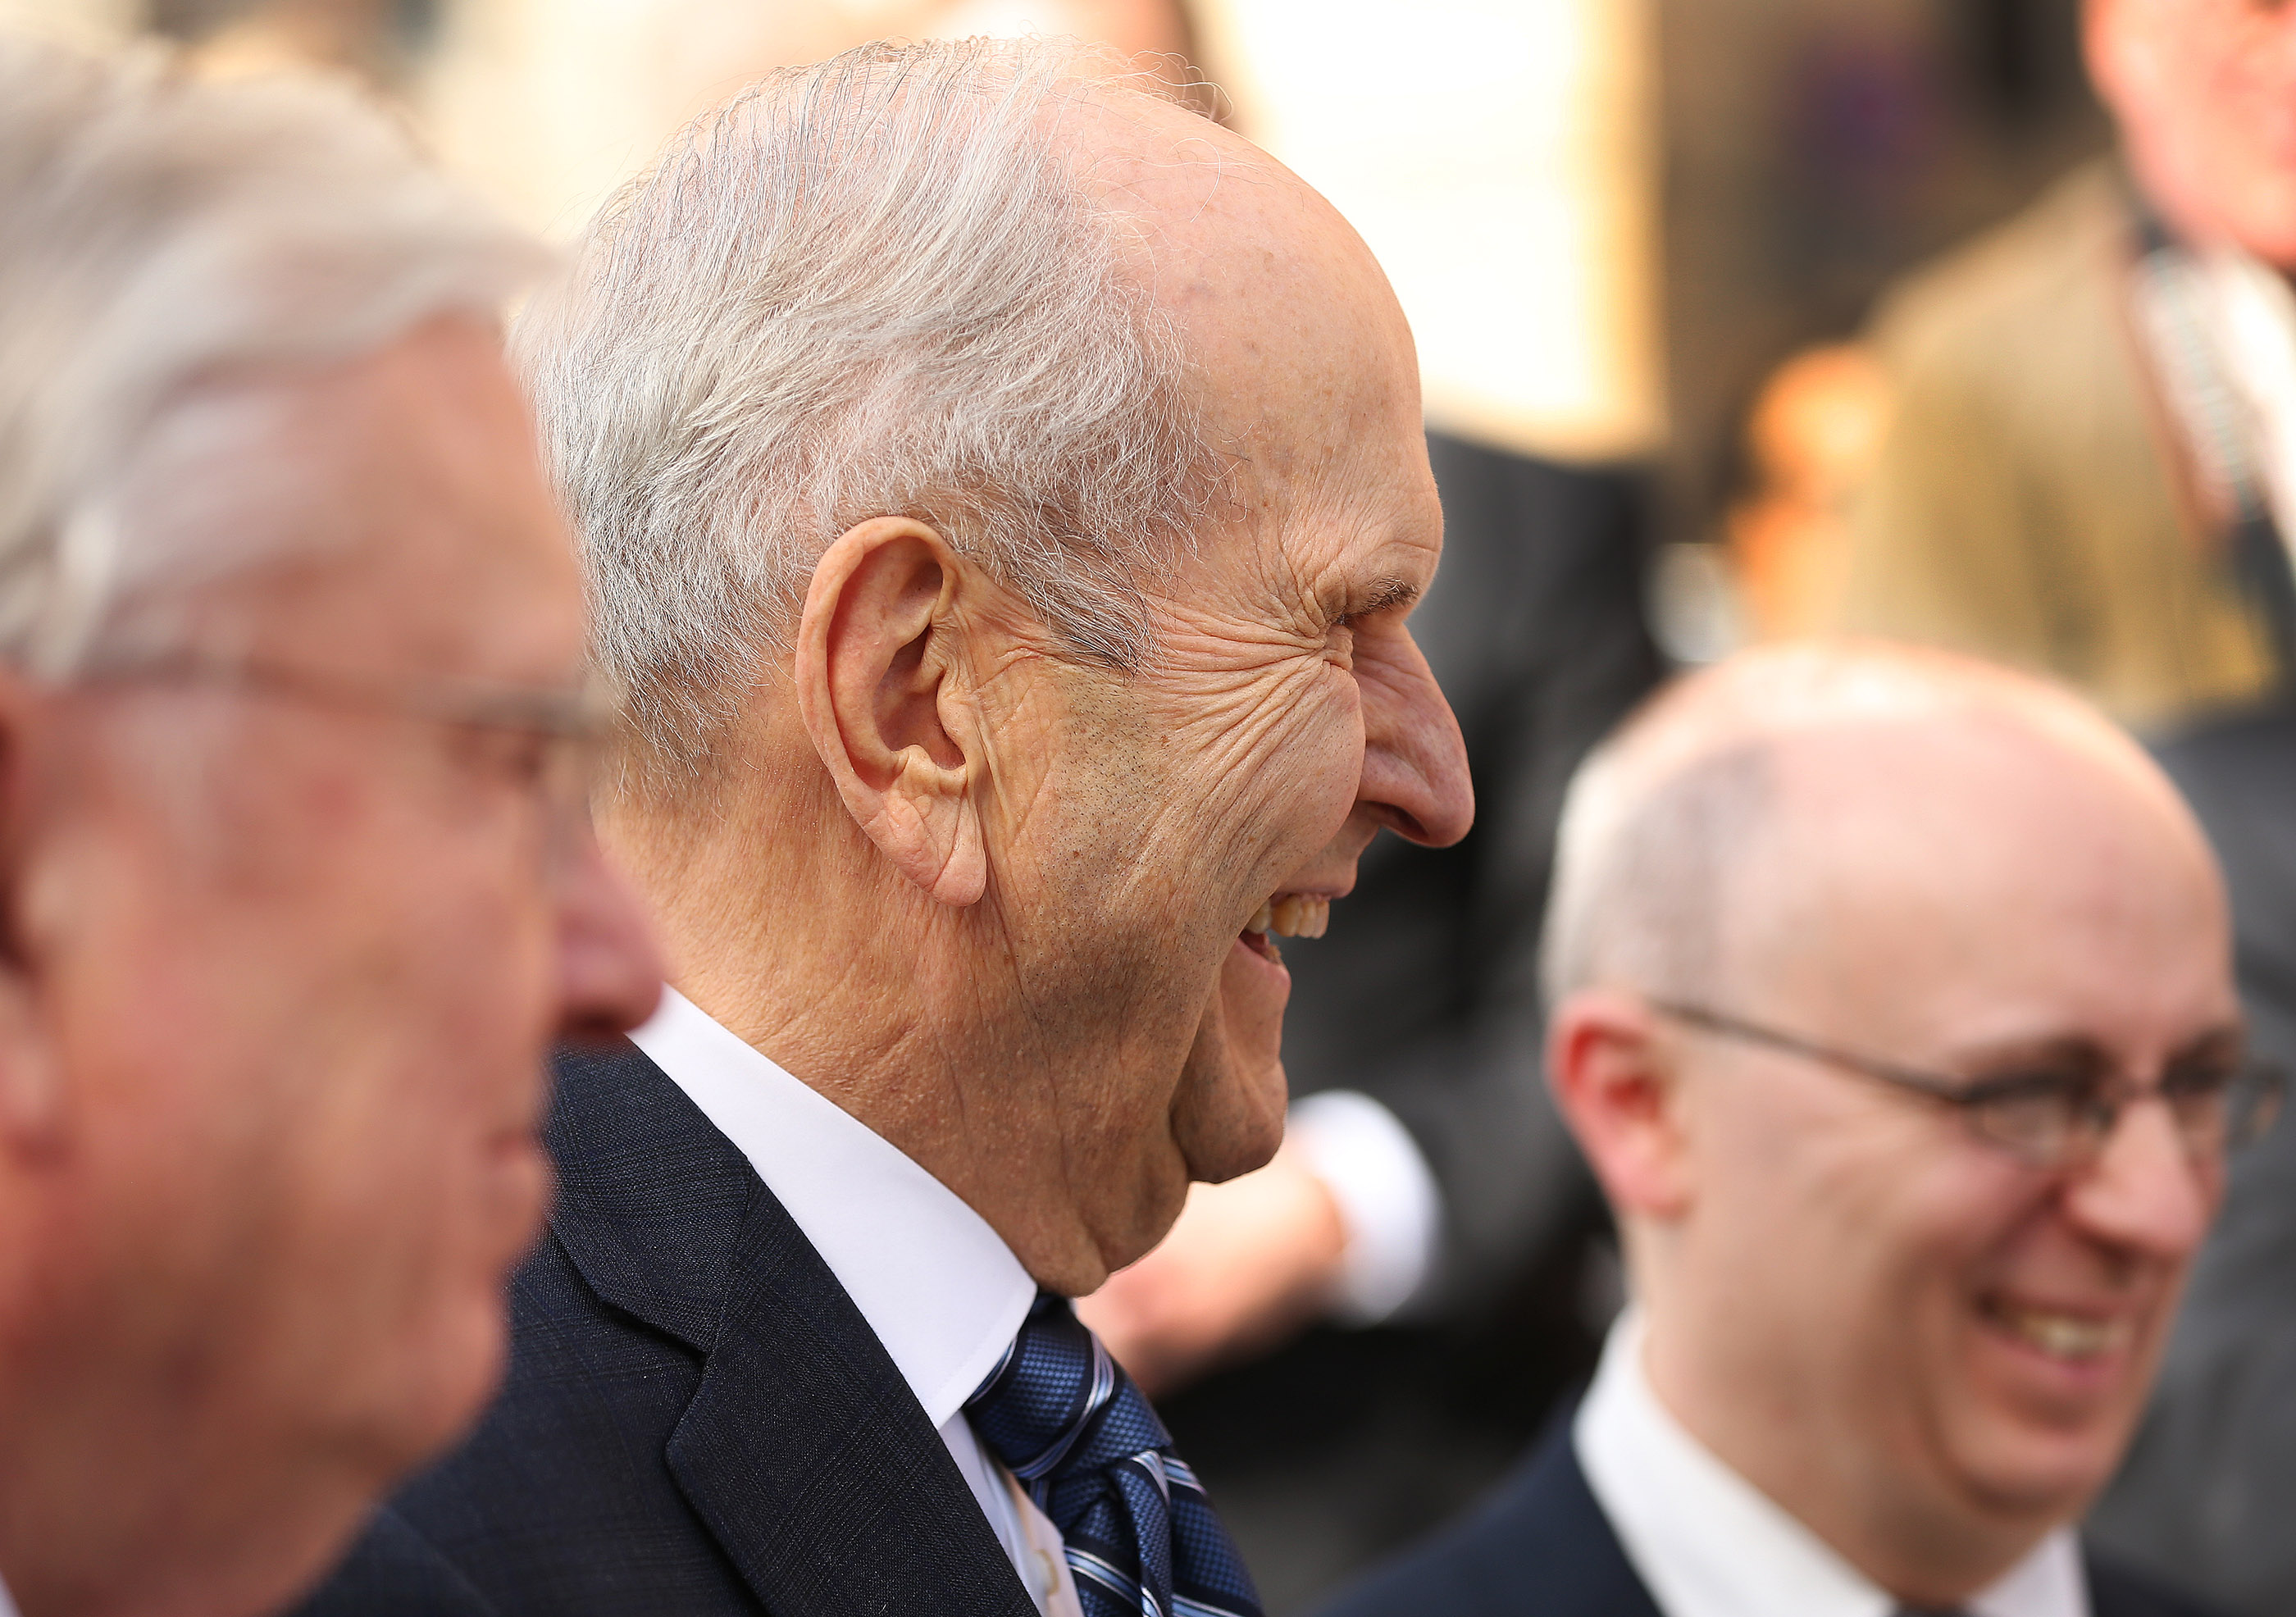 President Russell M. Nelson of The Church of Jesus Christ of Latter-day Saints smiles during a media interview near the Vatican in Rome, Italy on Saturday, March 9, 2019 after meeting with Pope Francis.